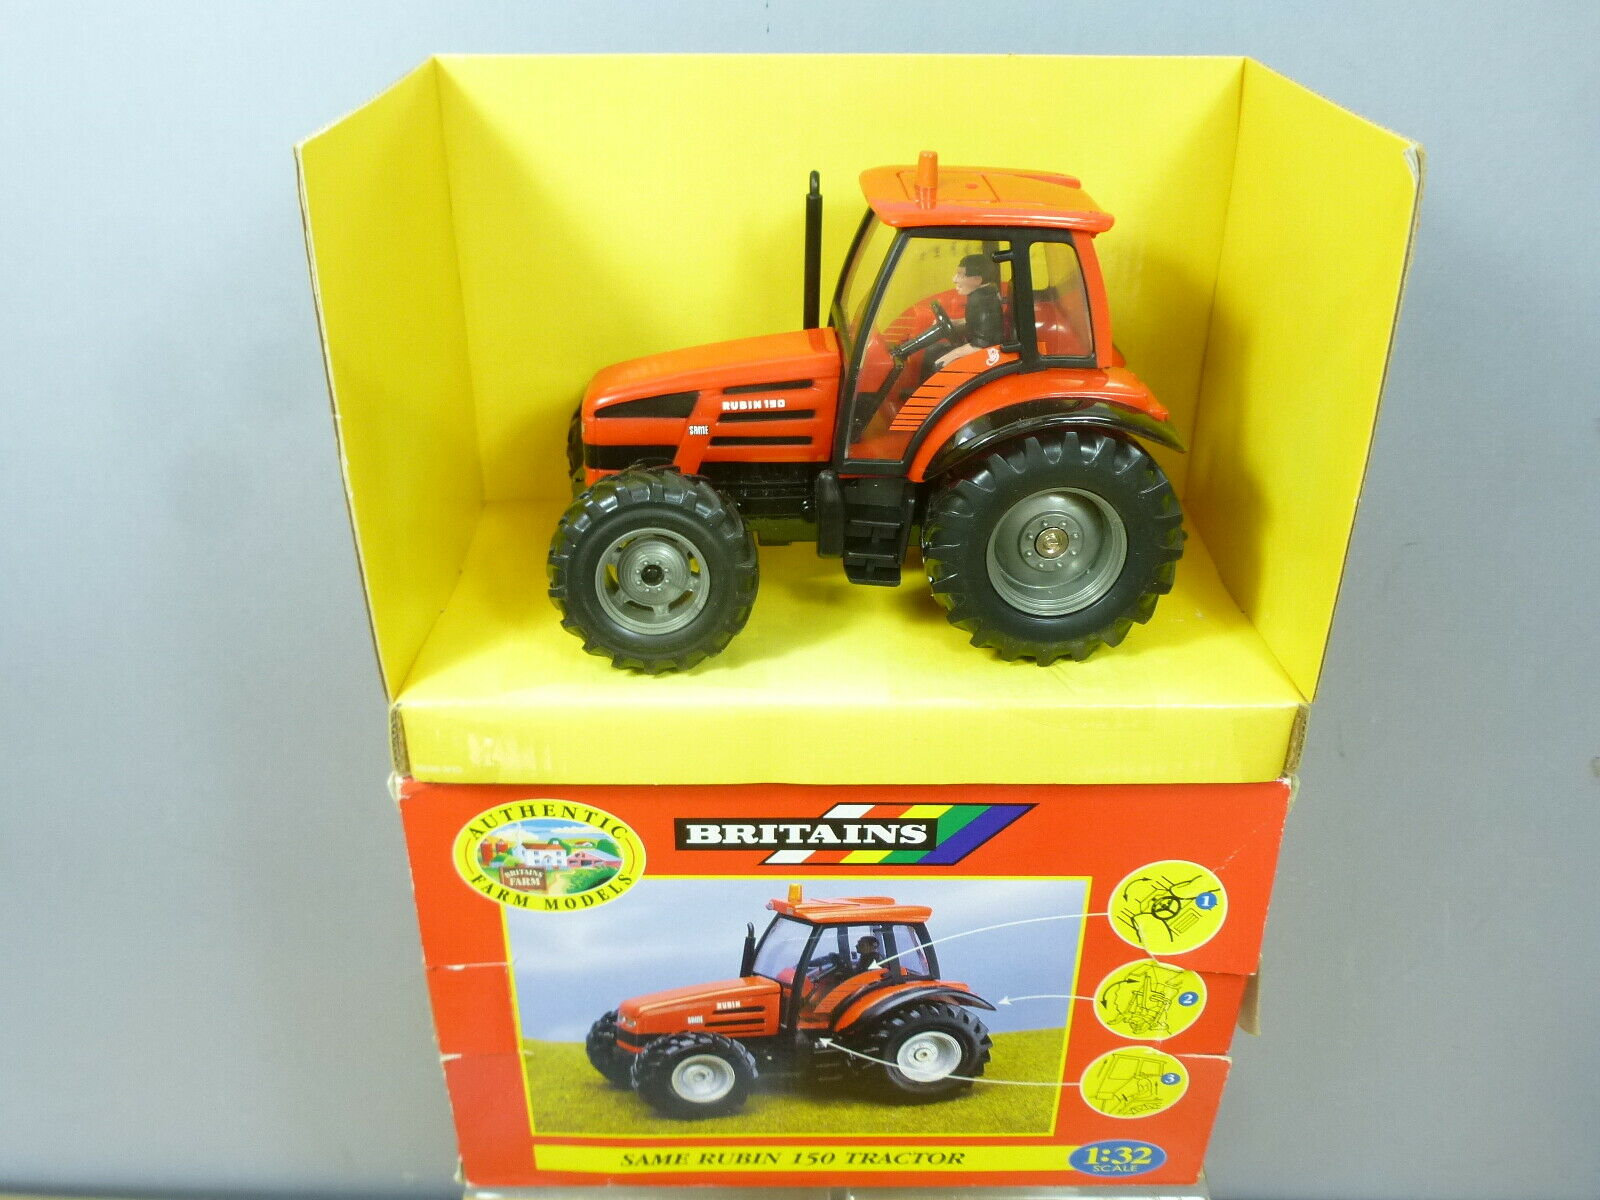 BRITAINS  MODEL No.00036  SAME RUBIN  150 TRACTOR      VN   MIB